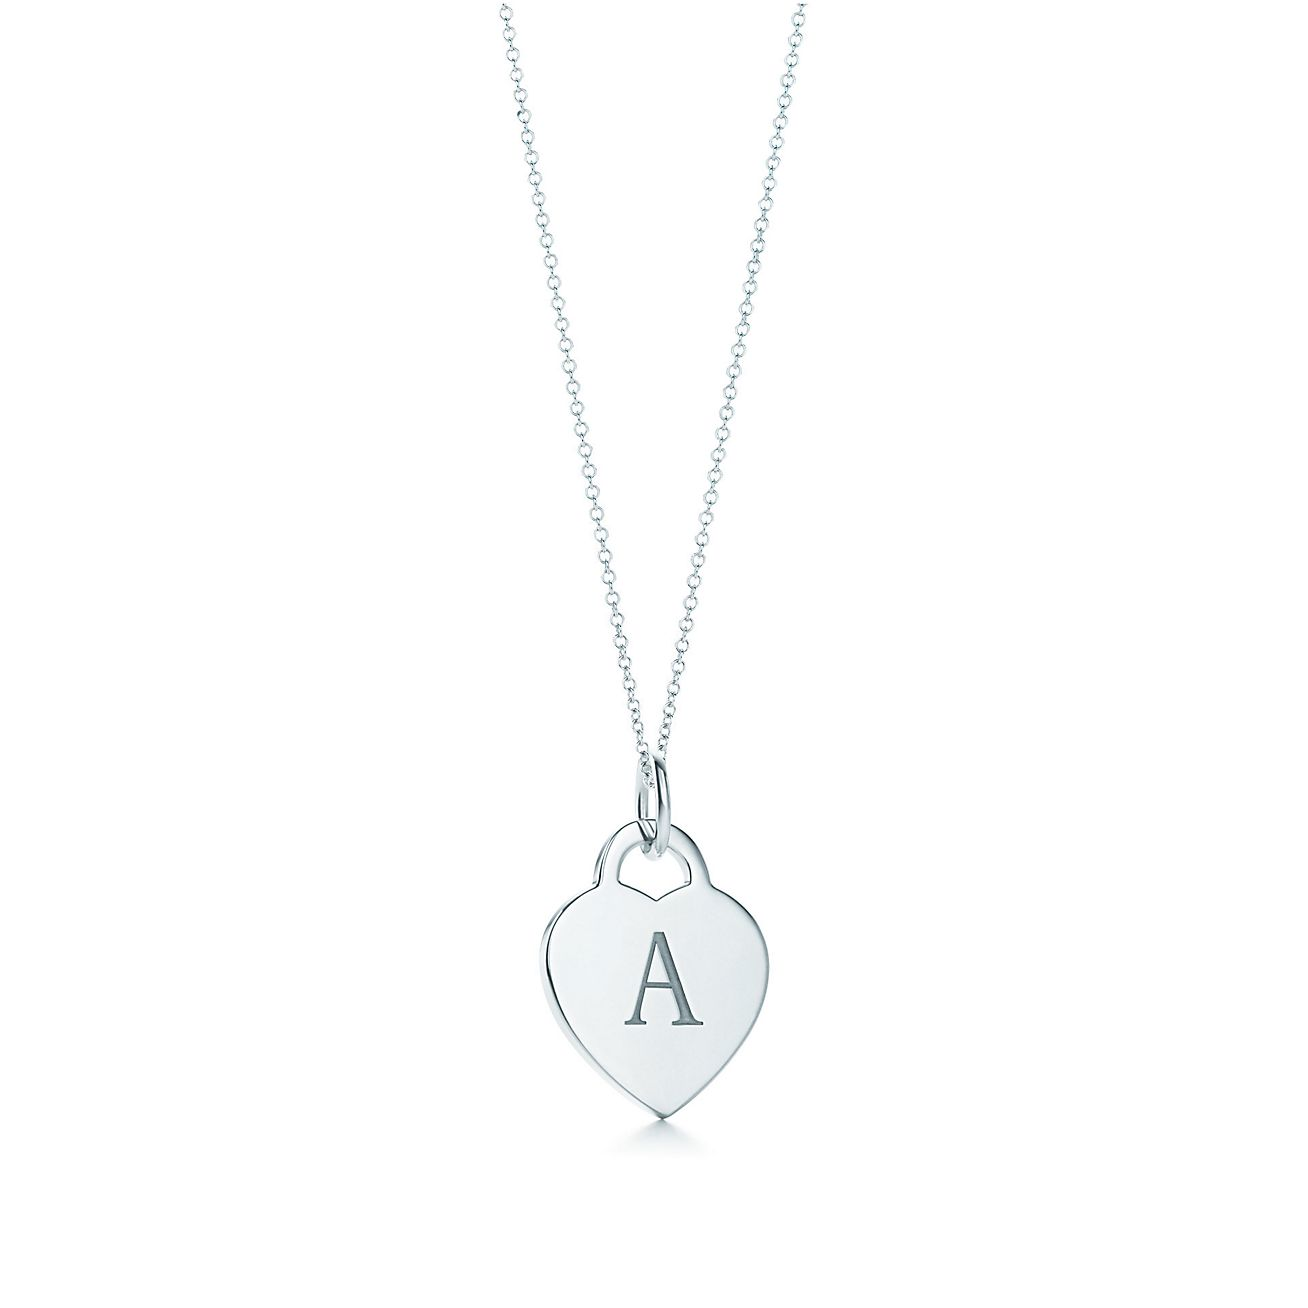 Tiffany Charms alphabet charm in sterling silver Letters A-Z available - Size A Tiffany & Co.